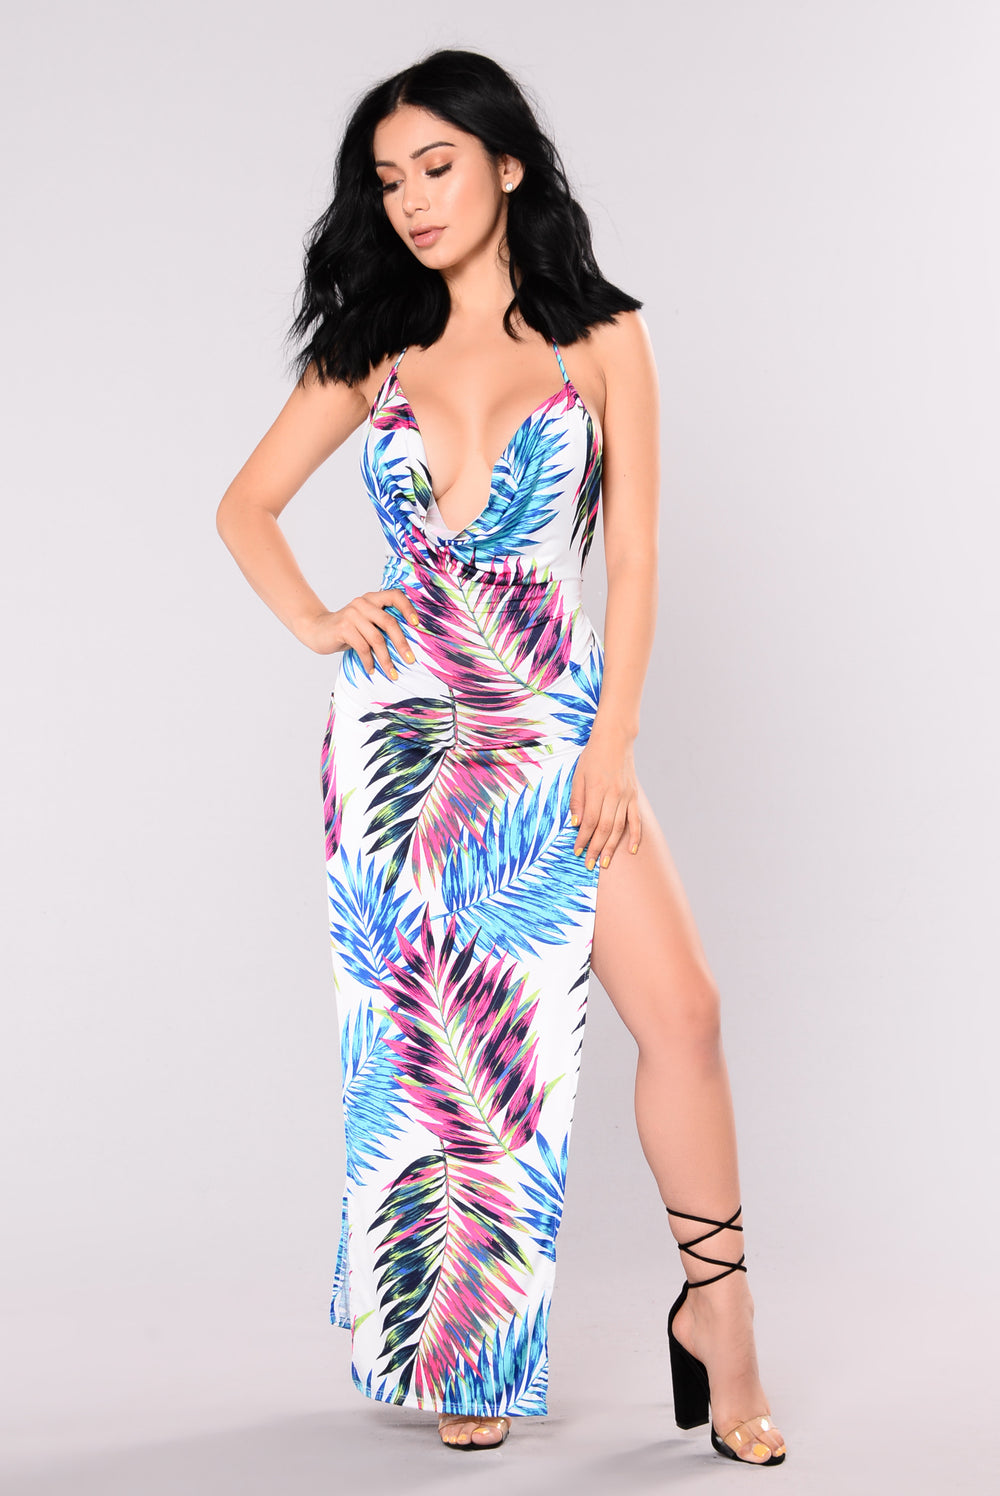 Beachin Maui Cover Up Dress - White Multi